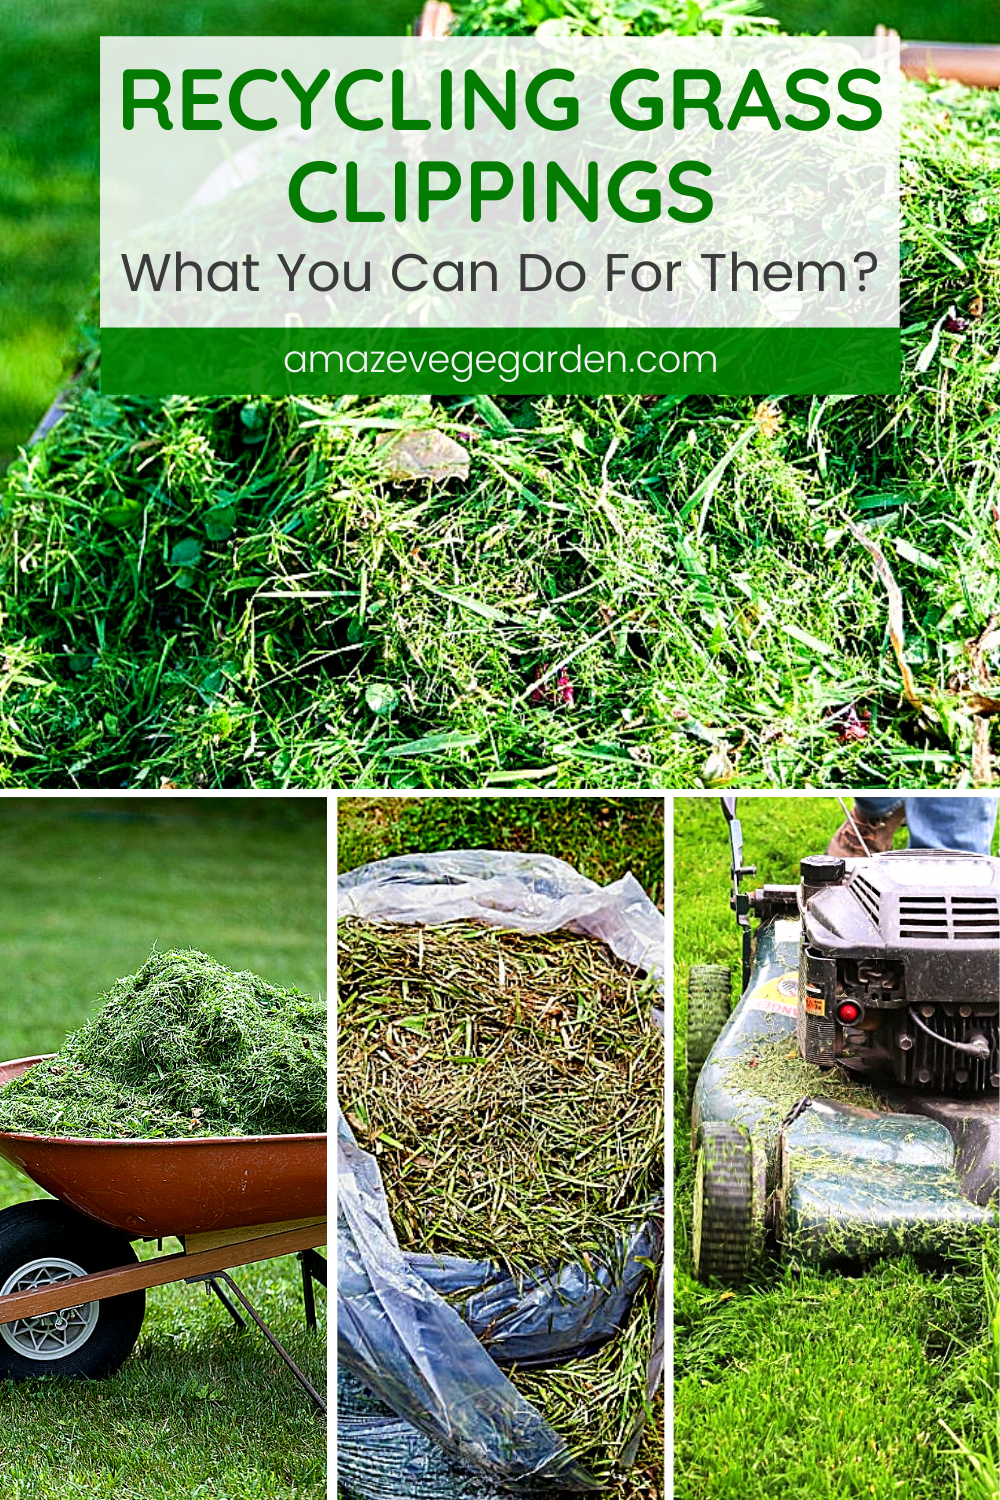 Recycling Grass Clippings What You Can Do For Them